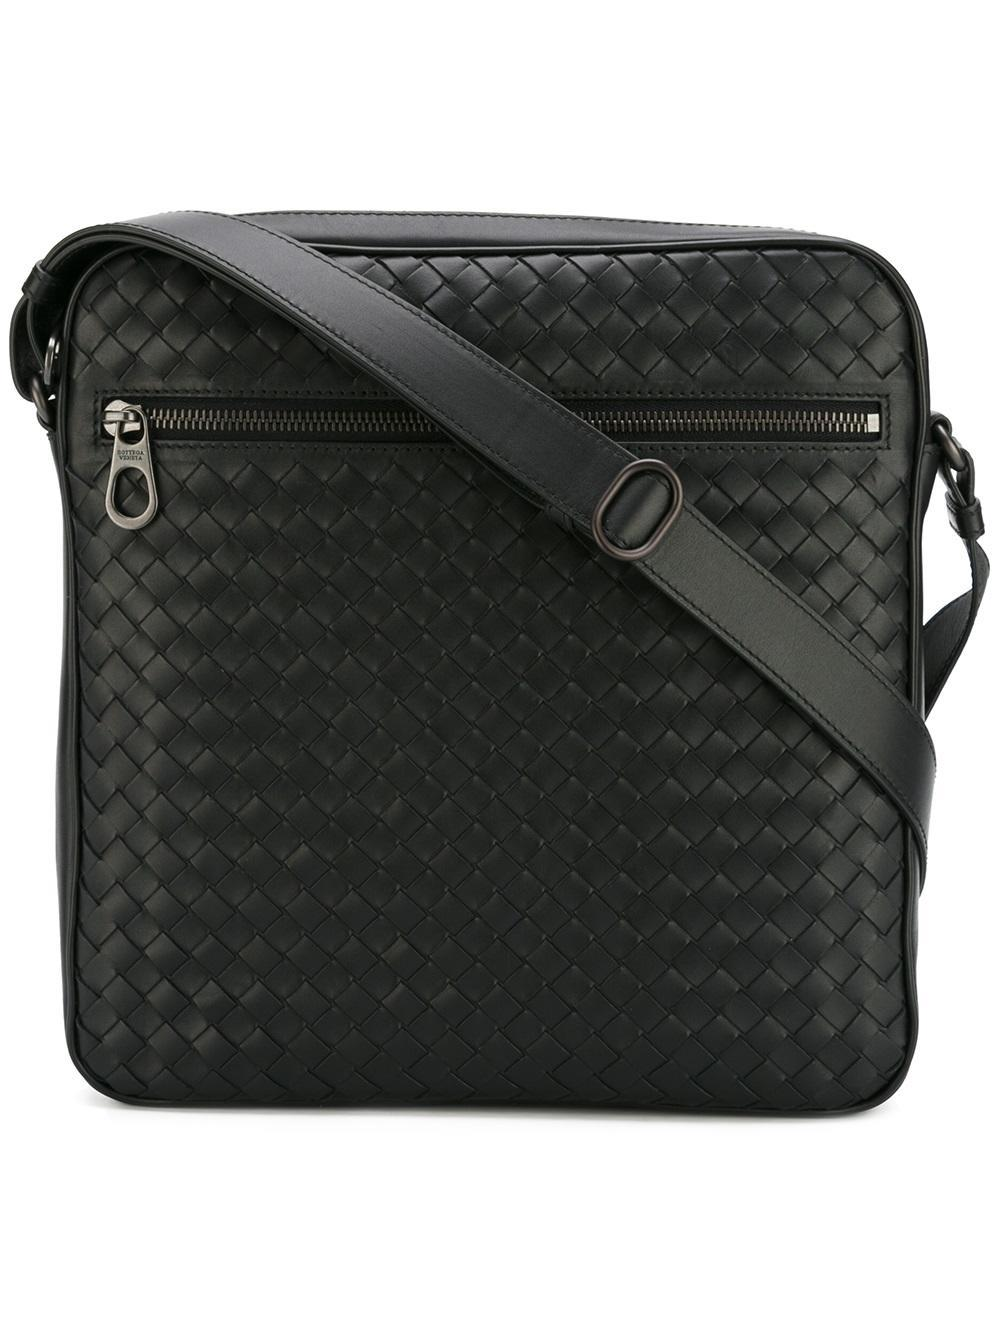 58258d8d1763 Bottega Veneta Leather Woven Messenger Bag